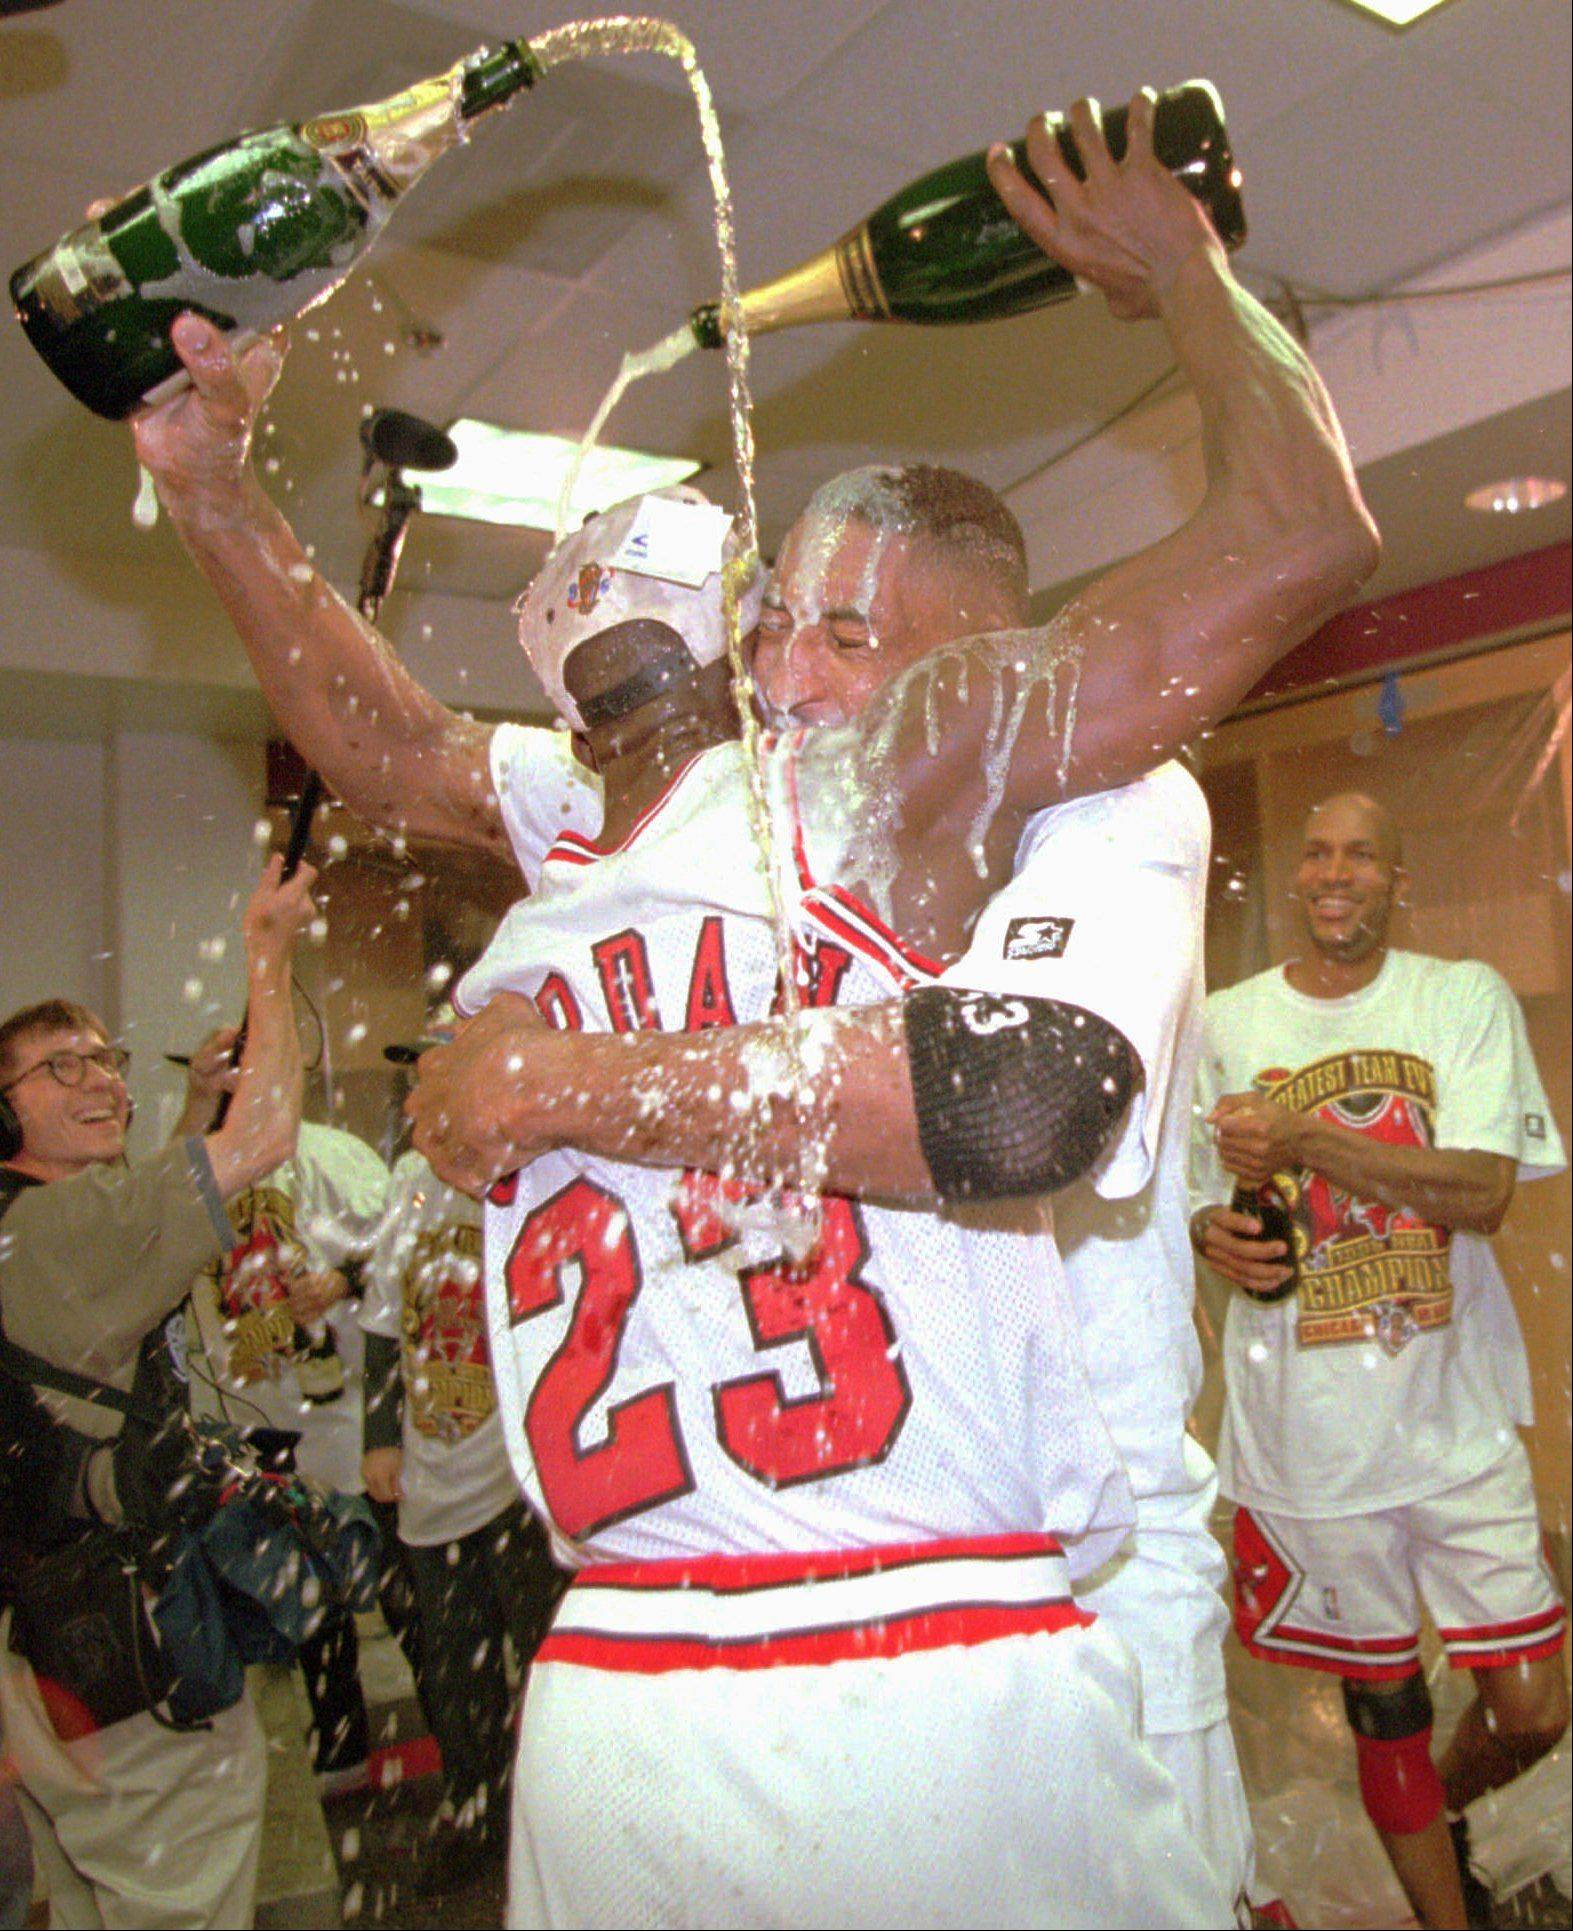 Michael Jordan, left, and Scottie Pippen celebrate with champagne in the locker room after they defeated the Seattle SuperSonics , 87-75, in Game 6 to win the NBA Championship Sunday, June 16, 1996, in Chicago.